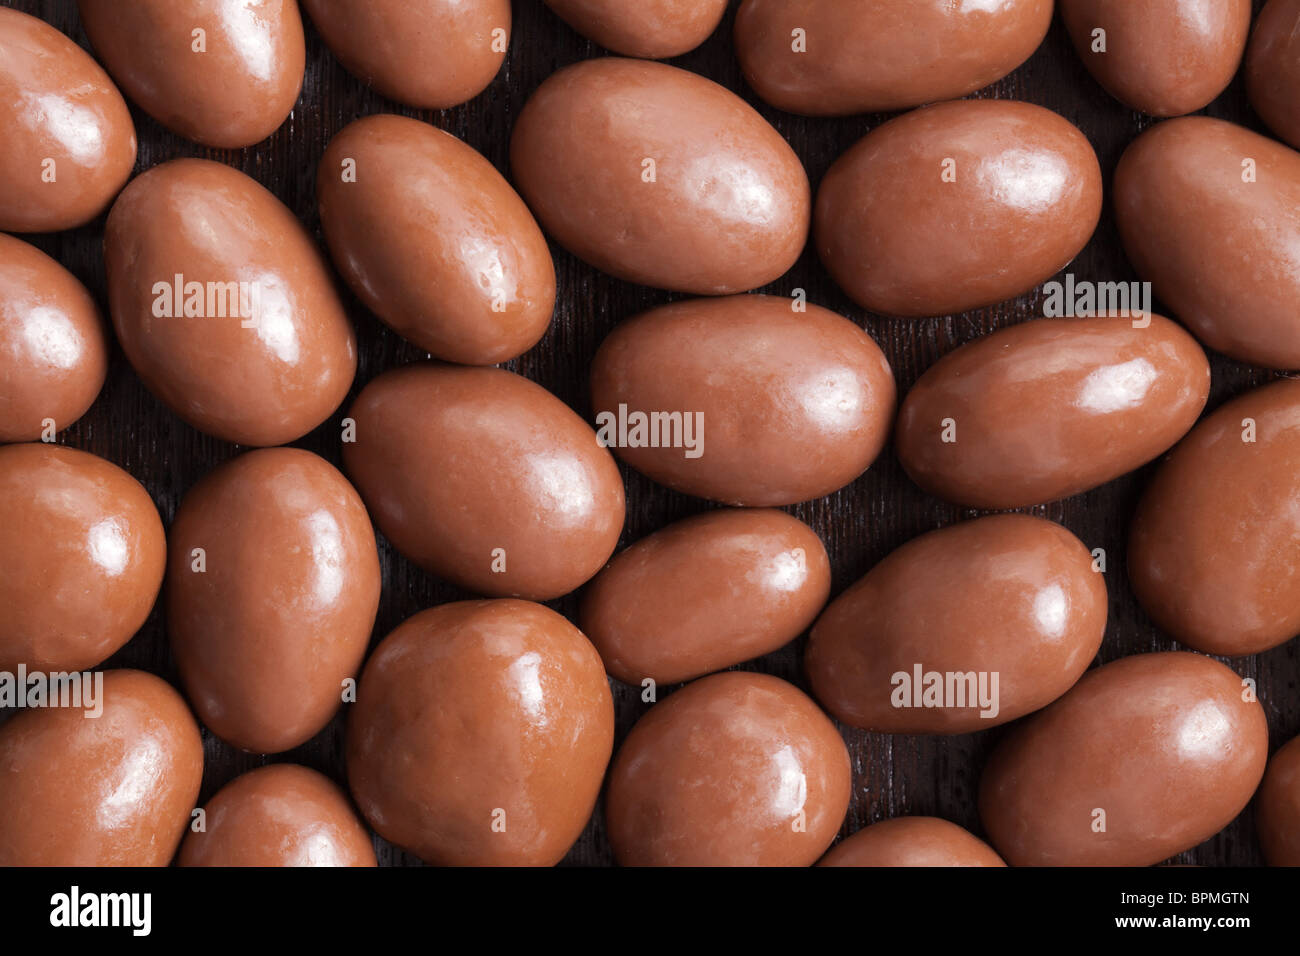 Les amandes dans le chocolat Photo Stock